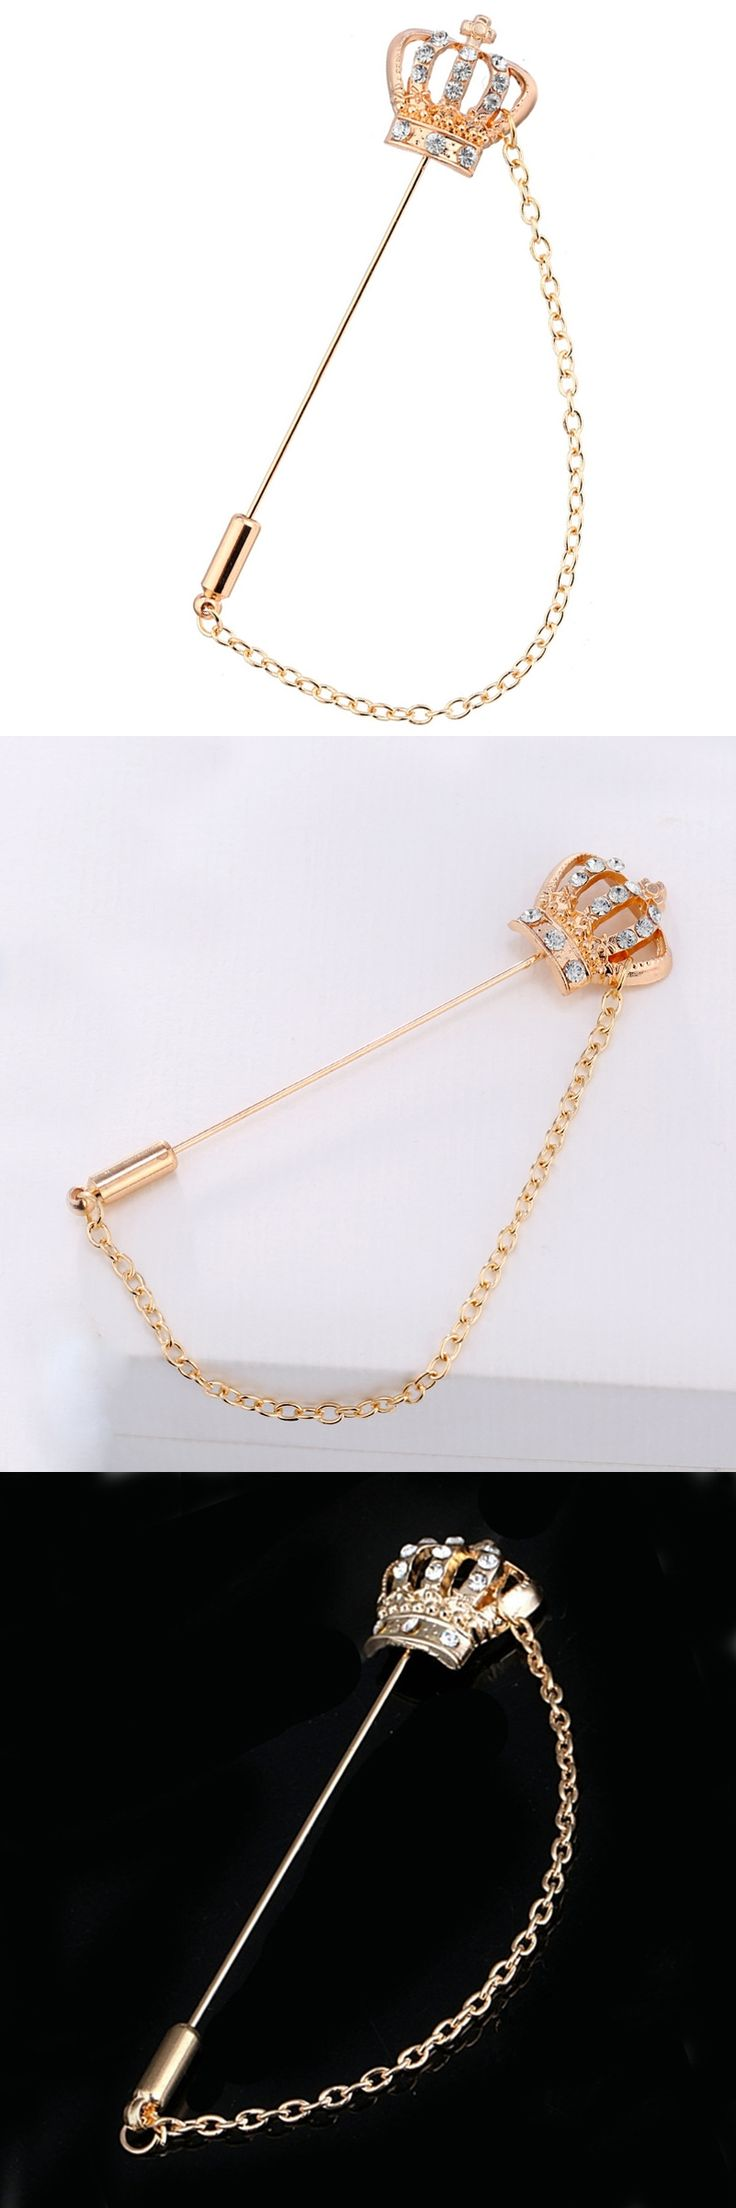 Unisex Rhinestone Crown Men's Chain Brooch Lapel Pin Suit Boutonniere Button Stick Brooches Wedding Party Accessories